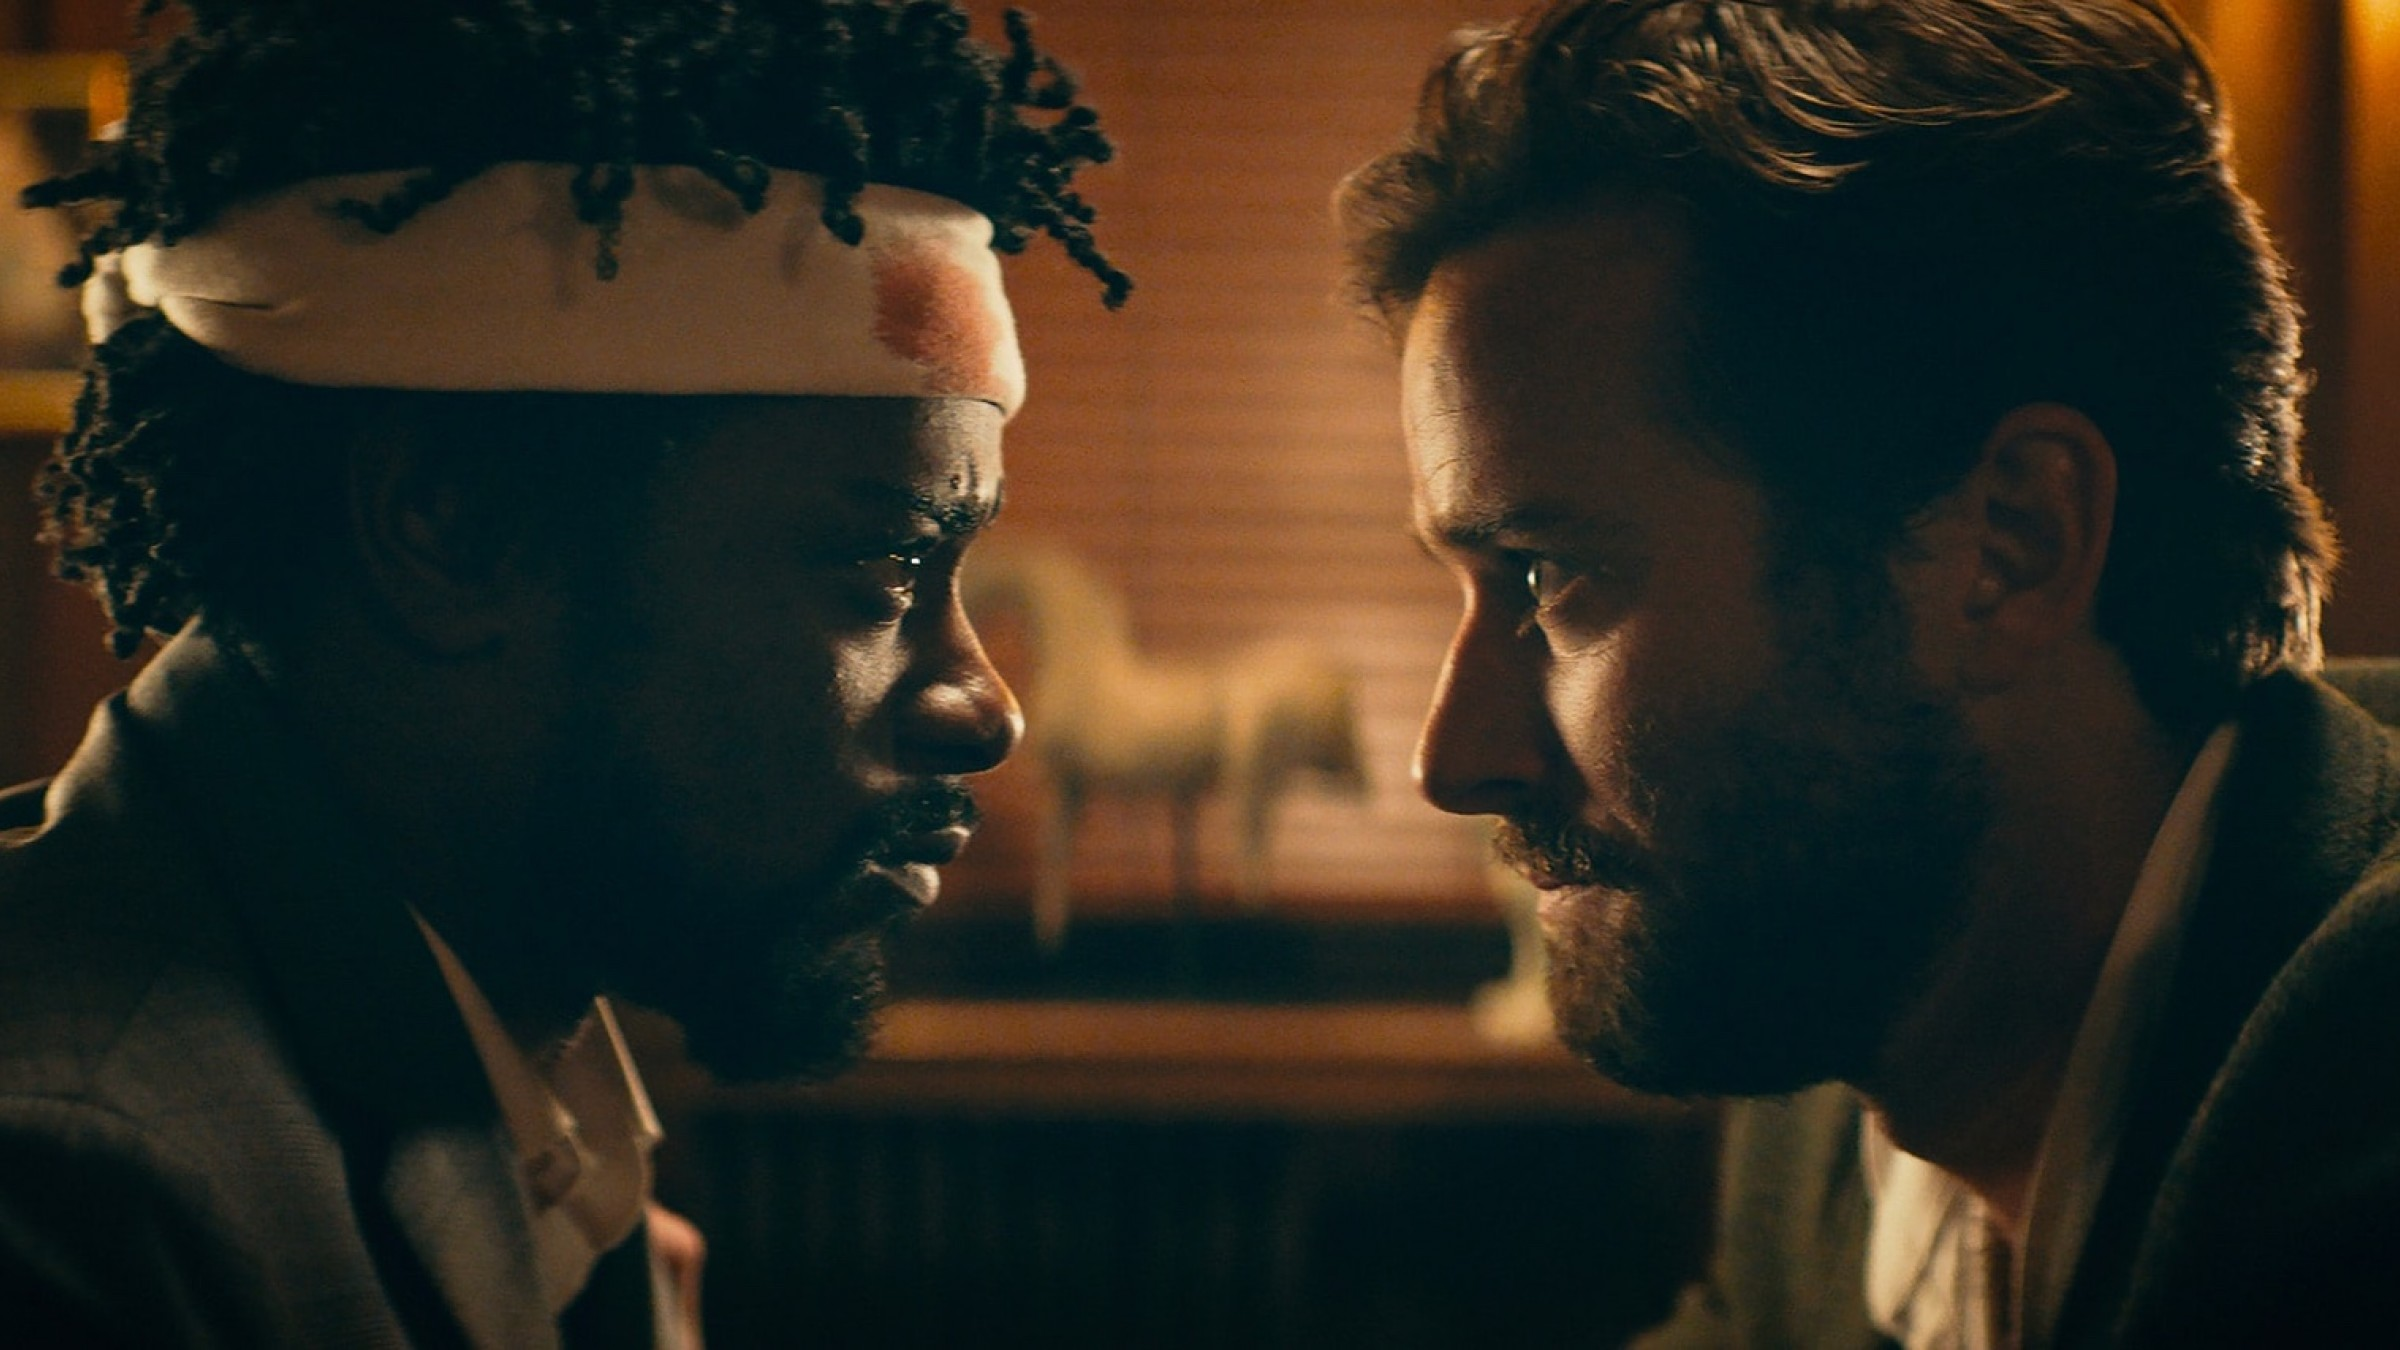 Download Screenplays for 'Sorry to Bother You', 'The Ballad of Buster Scruggs', '22 July,' & More